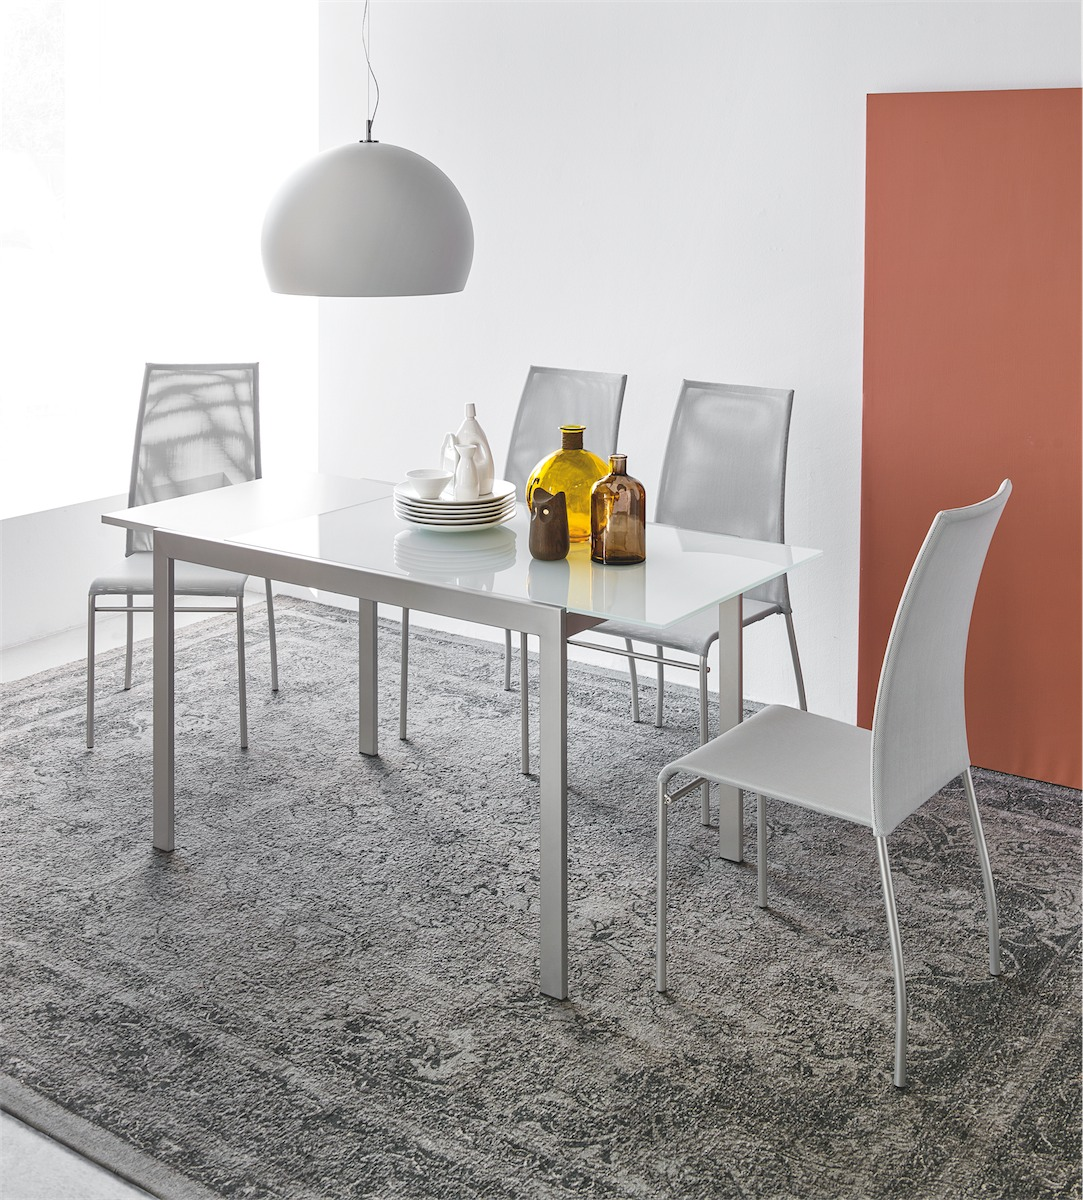 Tavolo aladino 120 vetro connubia by calligaris linea for Calligaris tavolo connubia